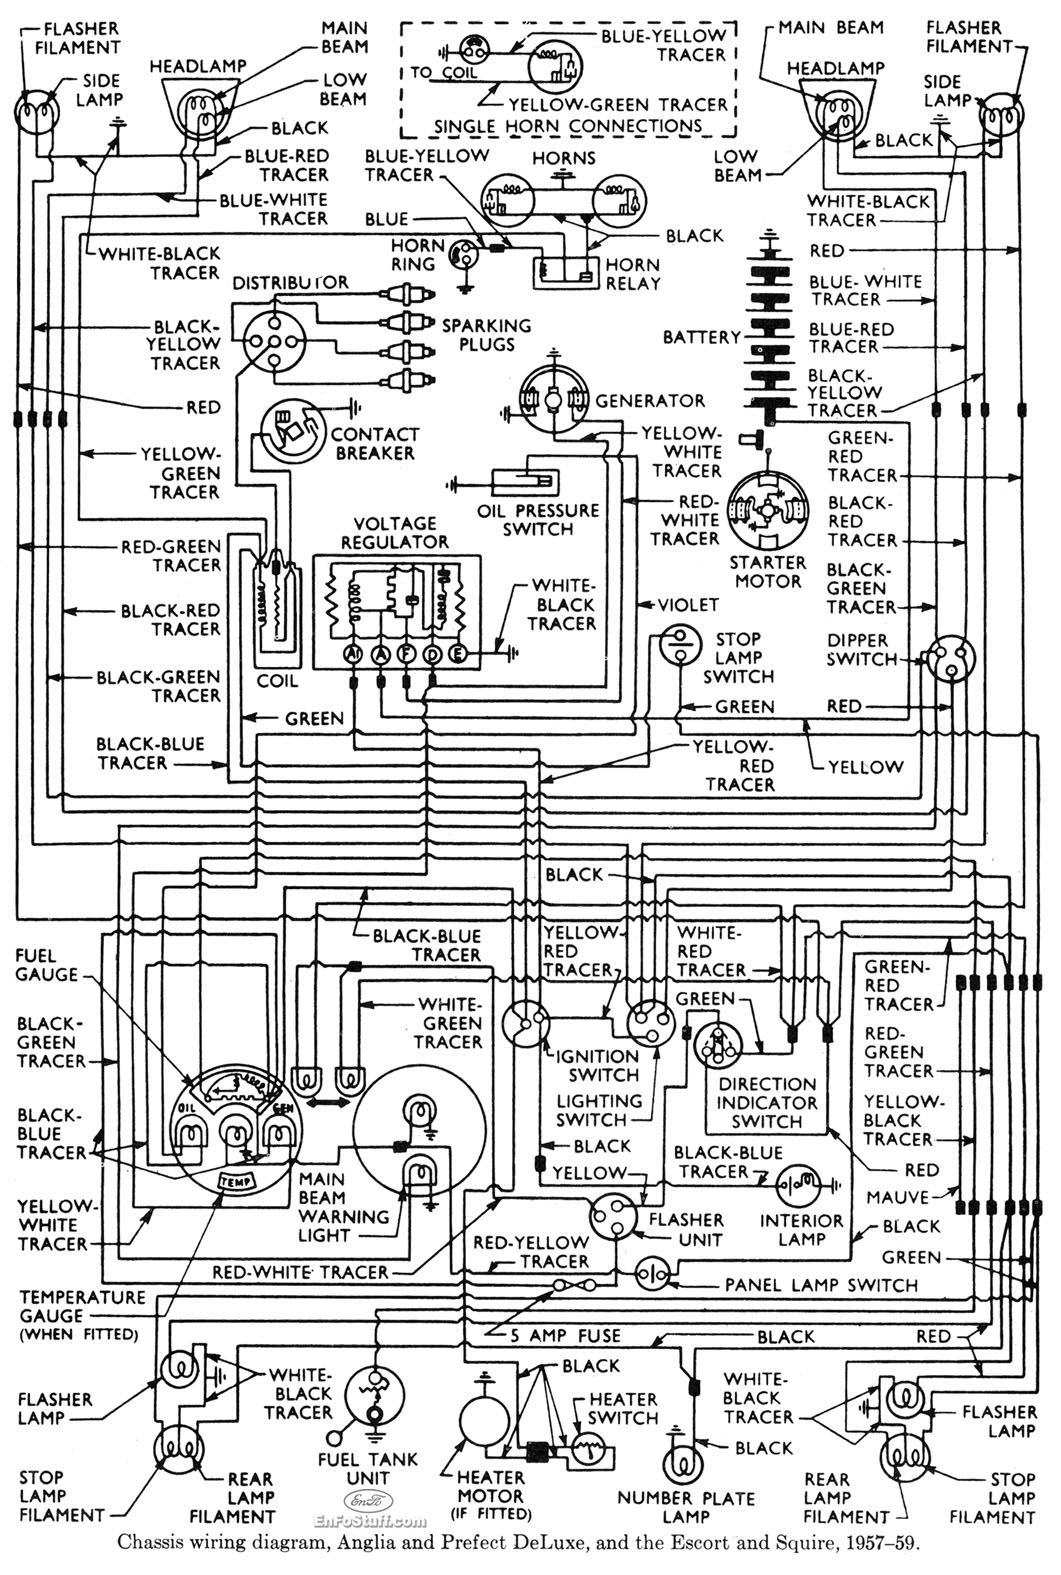 ford anglia prefect escort squire 1957 59 wiring diagram 1955 electrical wiring schematic suppliment 110 41 5 readingrat net 1988 columbia par car gas wiring diagram at gsmx.co